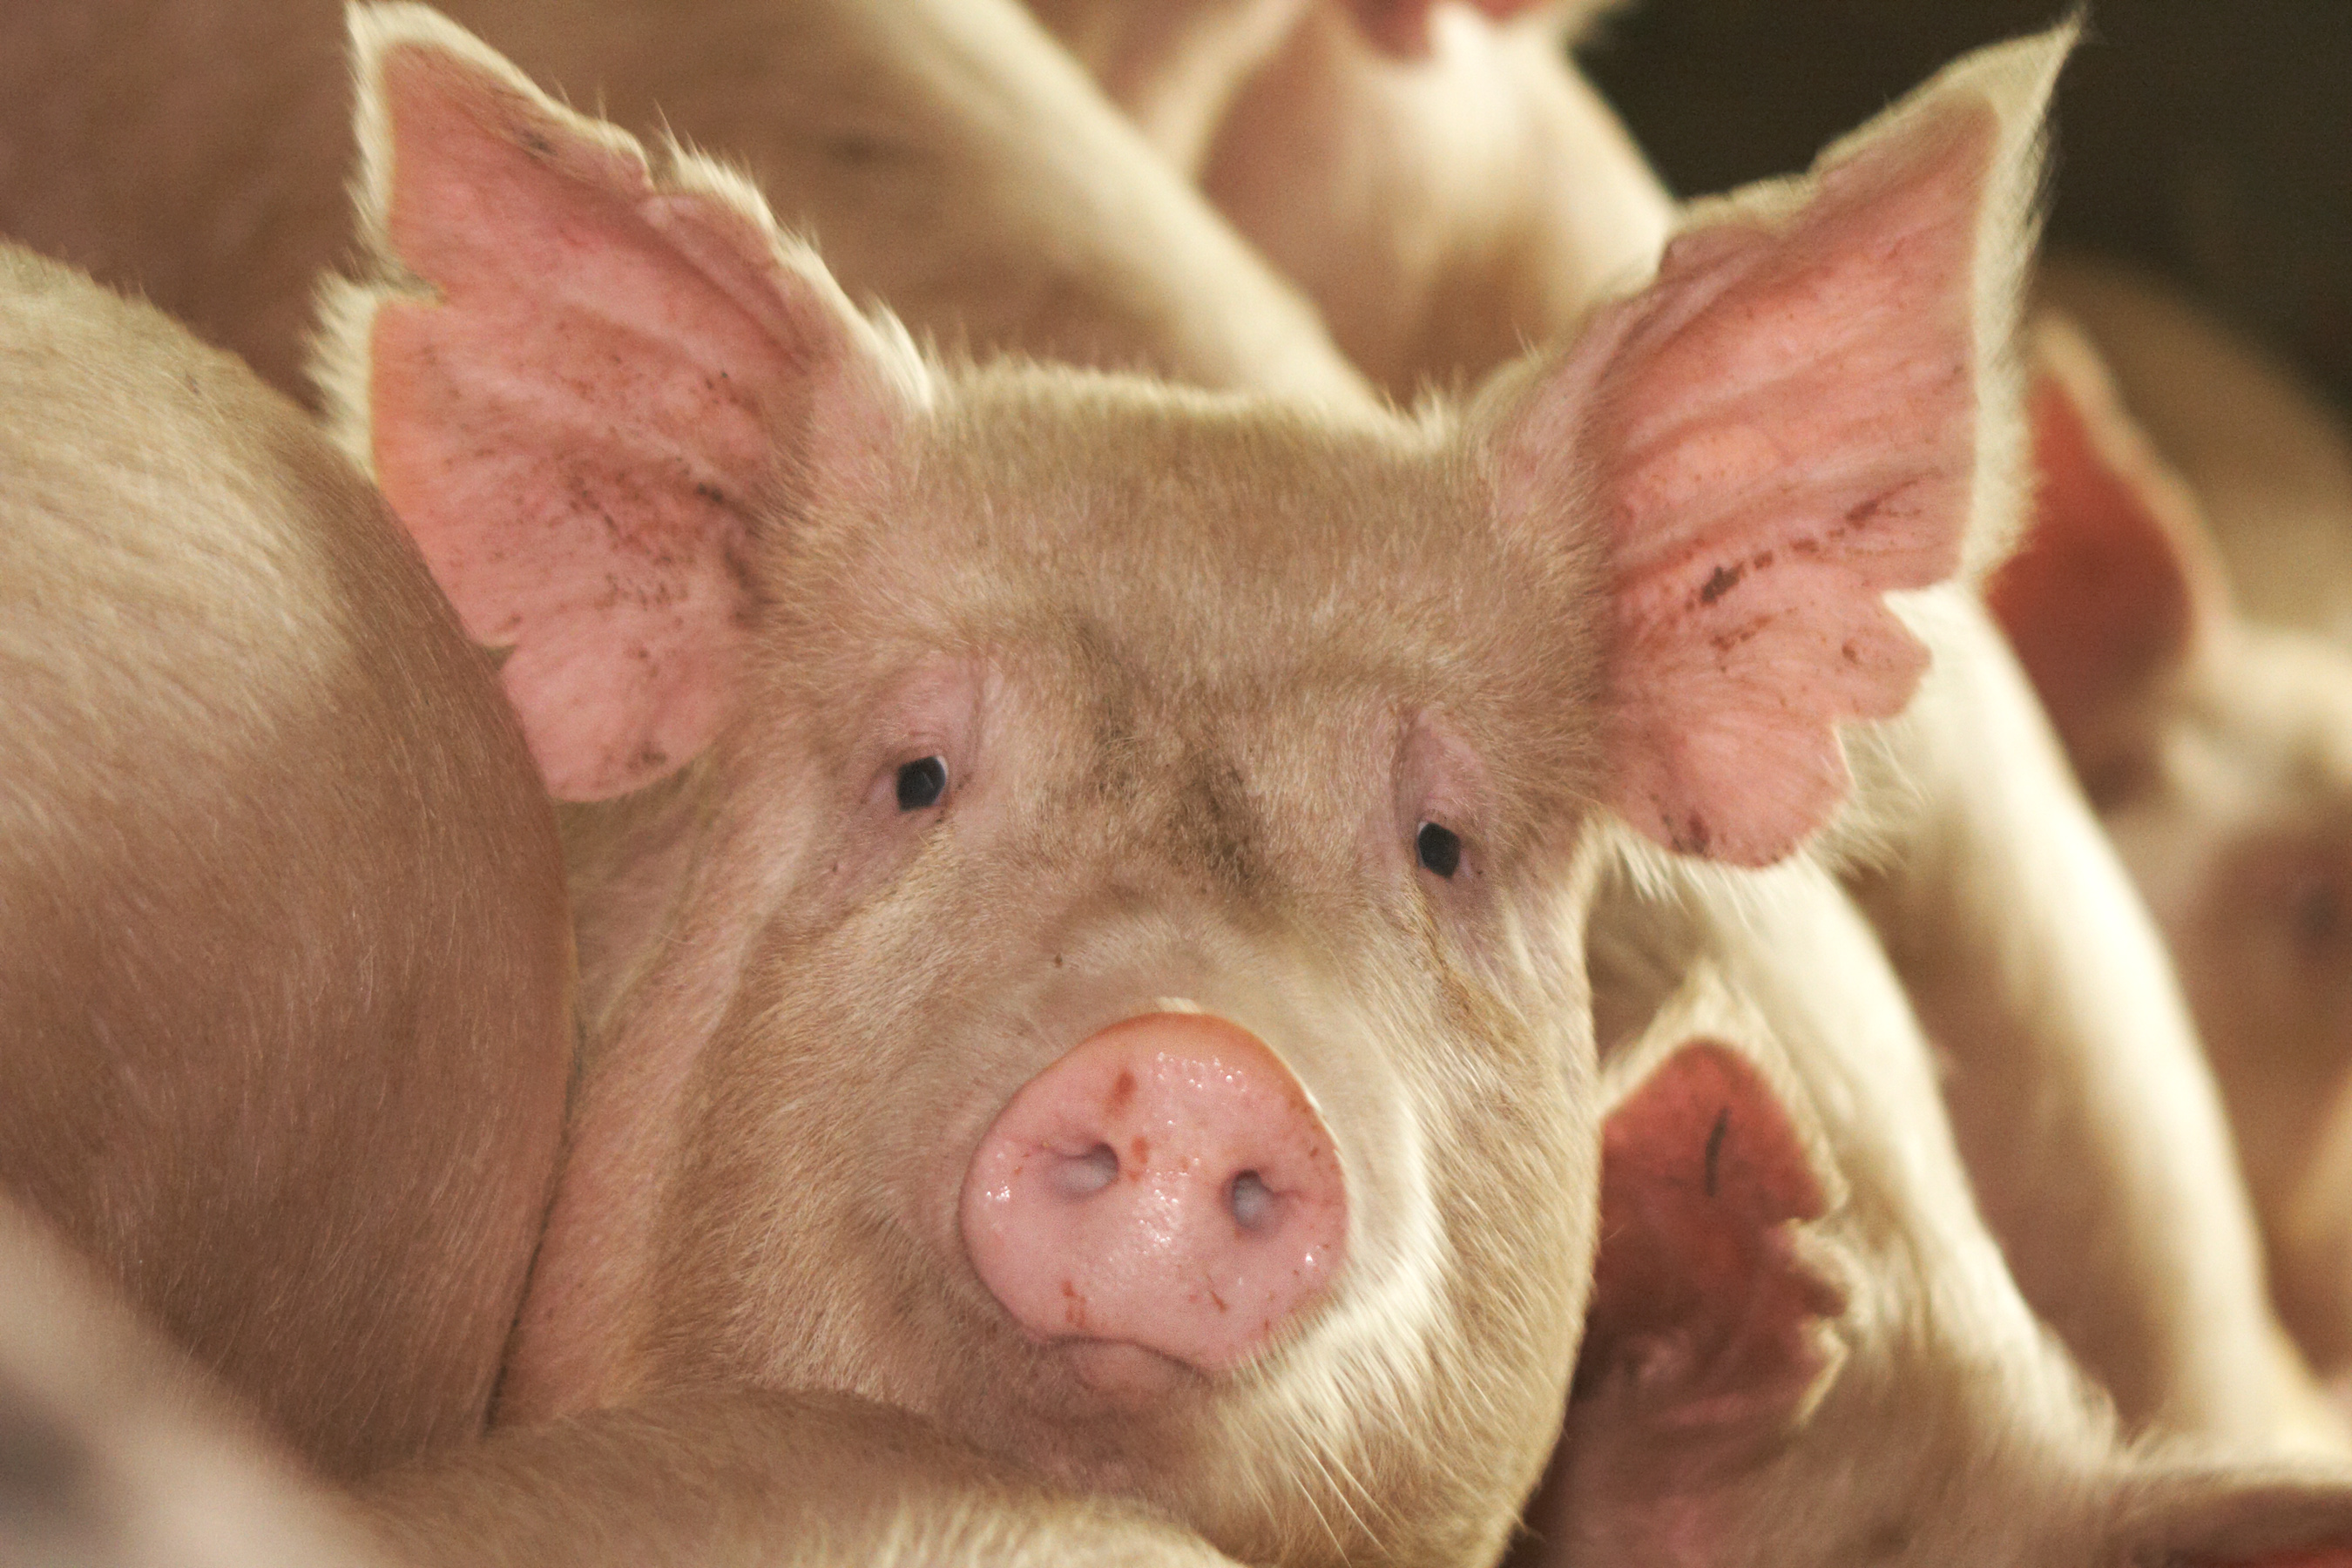 Live-cell pig skin successfully used to treat human burn wound